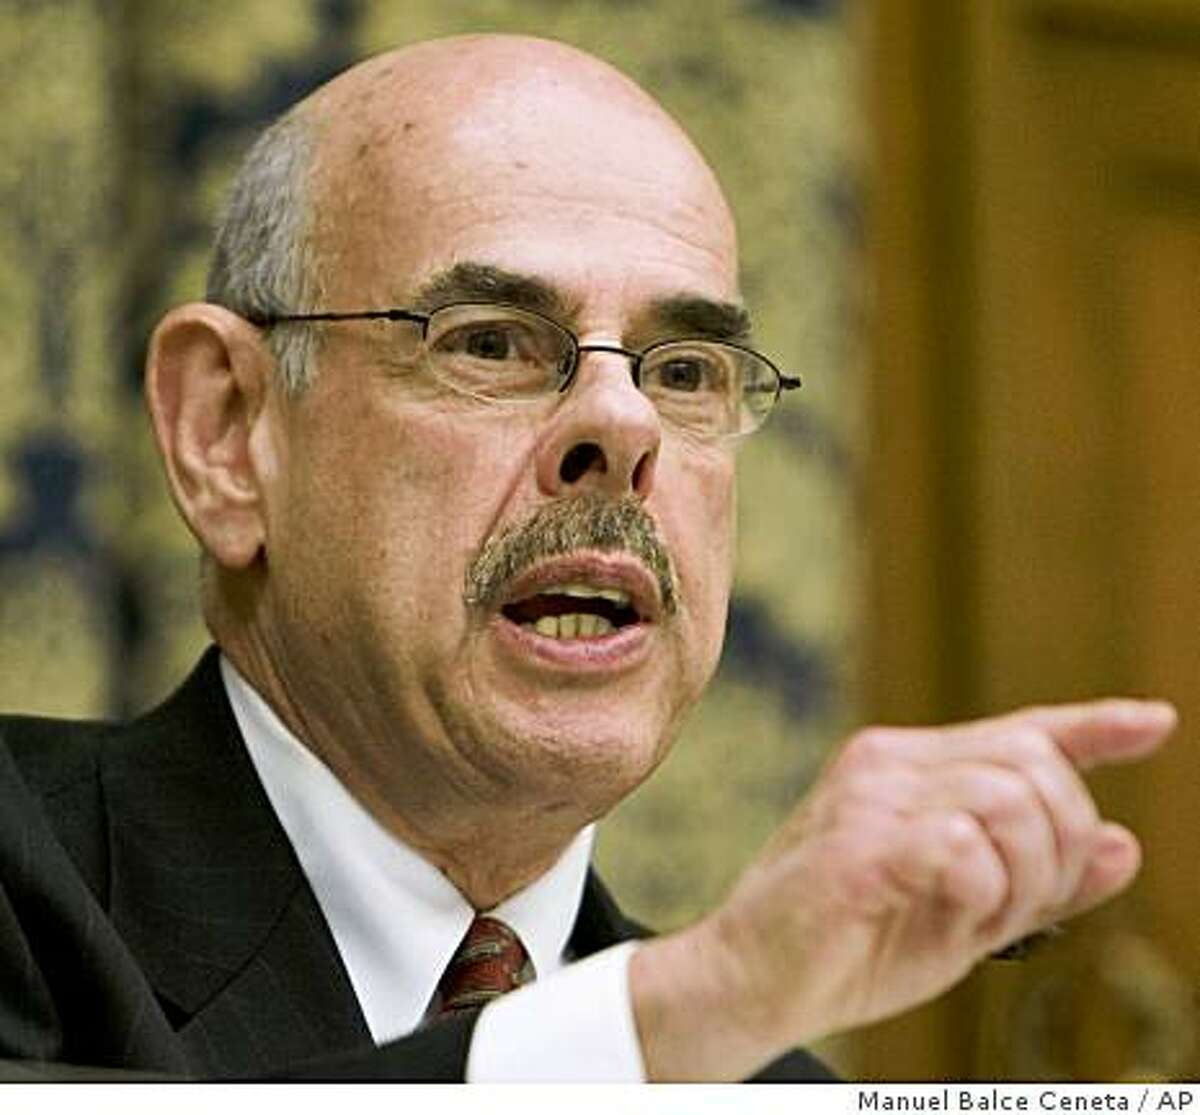 ** FILE ** In this Feb. 26, 2008, file photo, Rep. Henry Waxman, D-Calif., questions witnesses during a hearing on Capitol Hill in Washington. President-elect Obama has said he wants to act quickly on climate change but crucial bipartisan support could erode if Waxman succeeds at unseating Rep. John Dingell, D-Mich., as chairman of the House Energy and Commerce Committee. (AP Photo/Manuel Balce Ceneta, File)